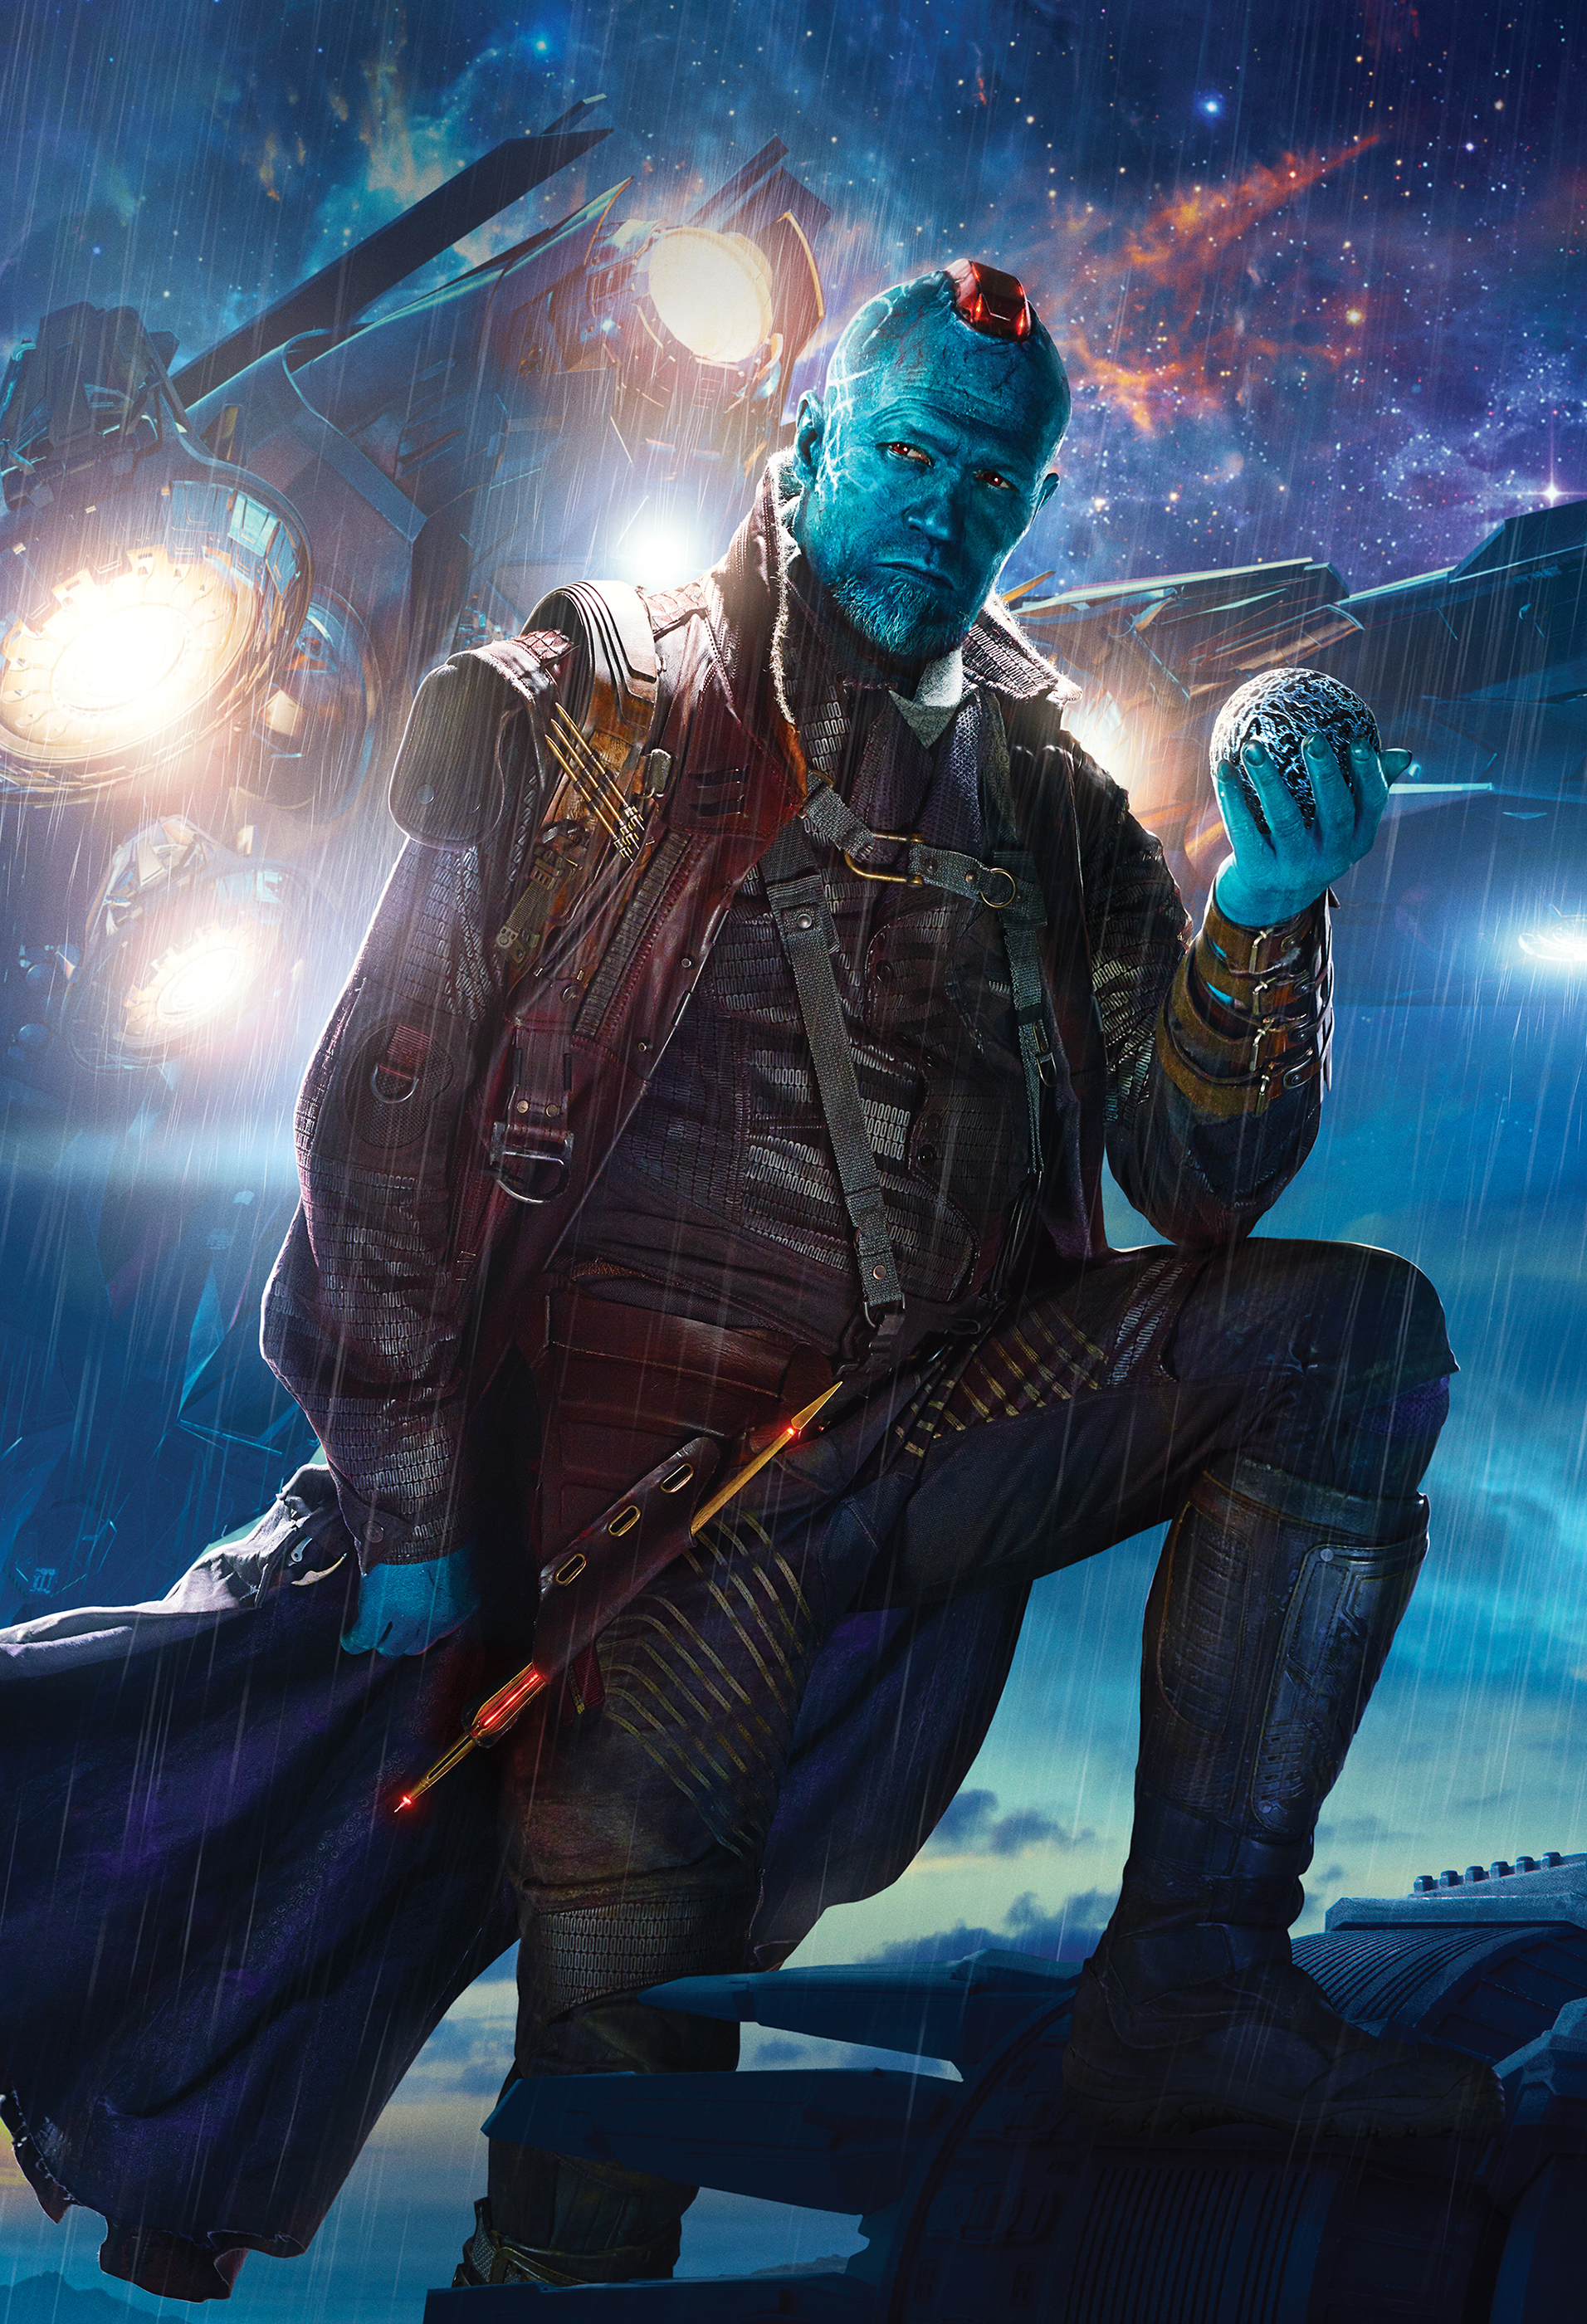 Yondu Udonta (Marvel Cinematic Universe)